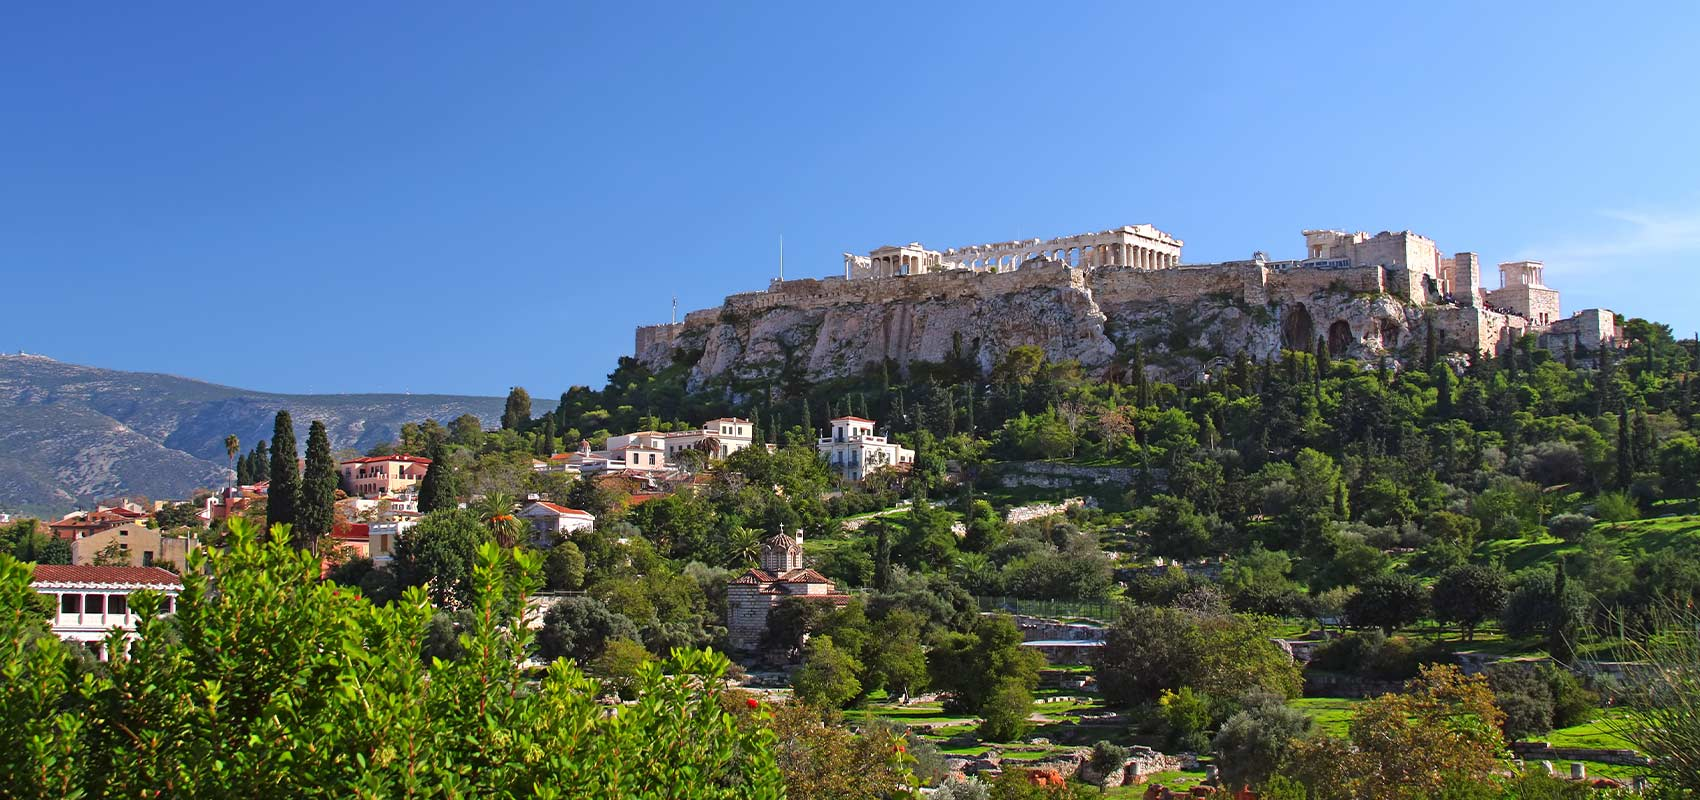 private transfer services private tours athens. Black Bedroom Furniture Sets. Home Design Ideas